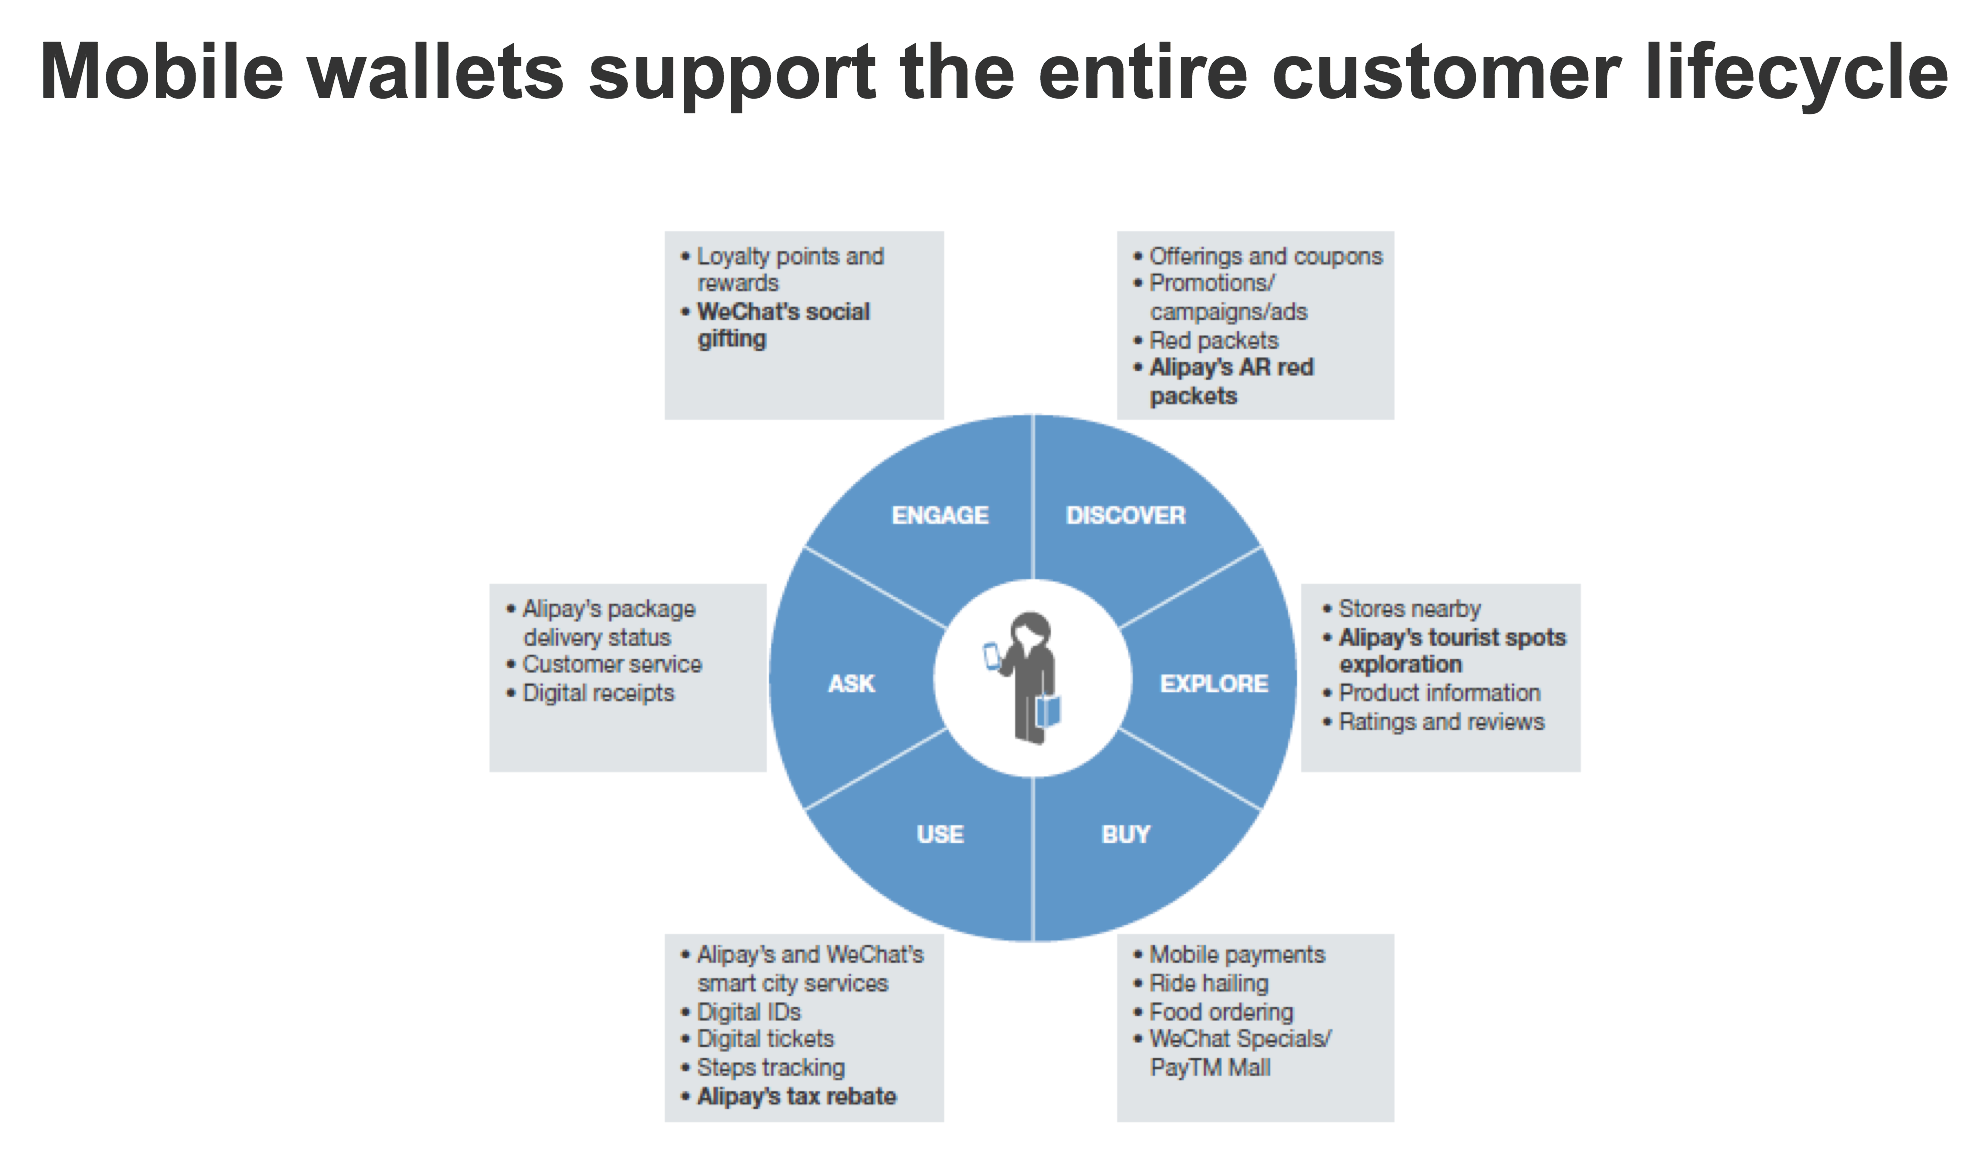 forrester-mobile-wallets-support-the-entire-customer-lifecycle-state-of-mobile-marketer-tactics-webinar-slide